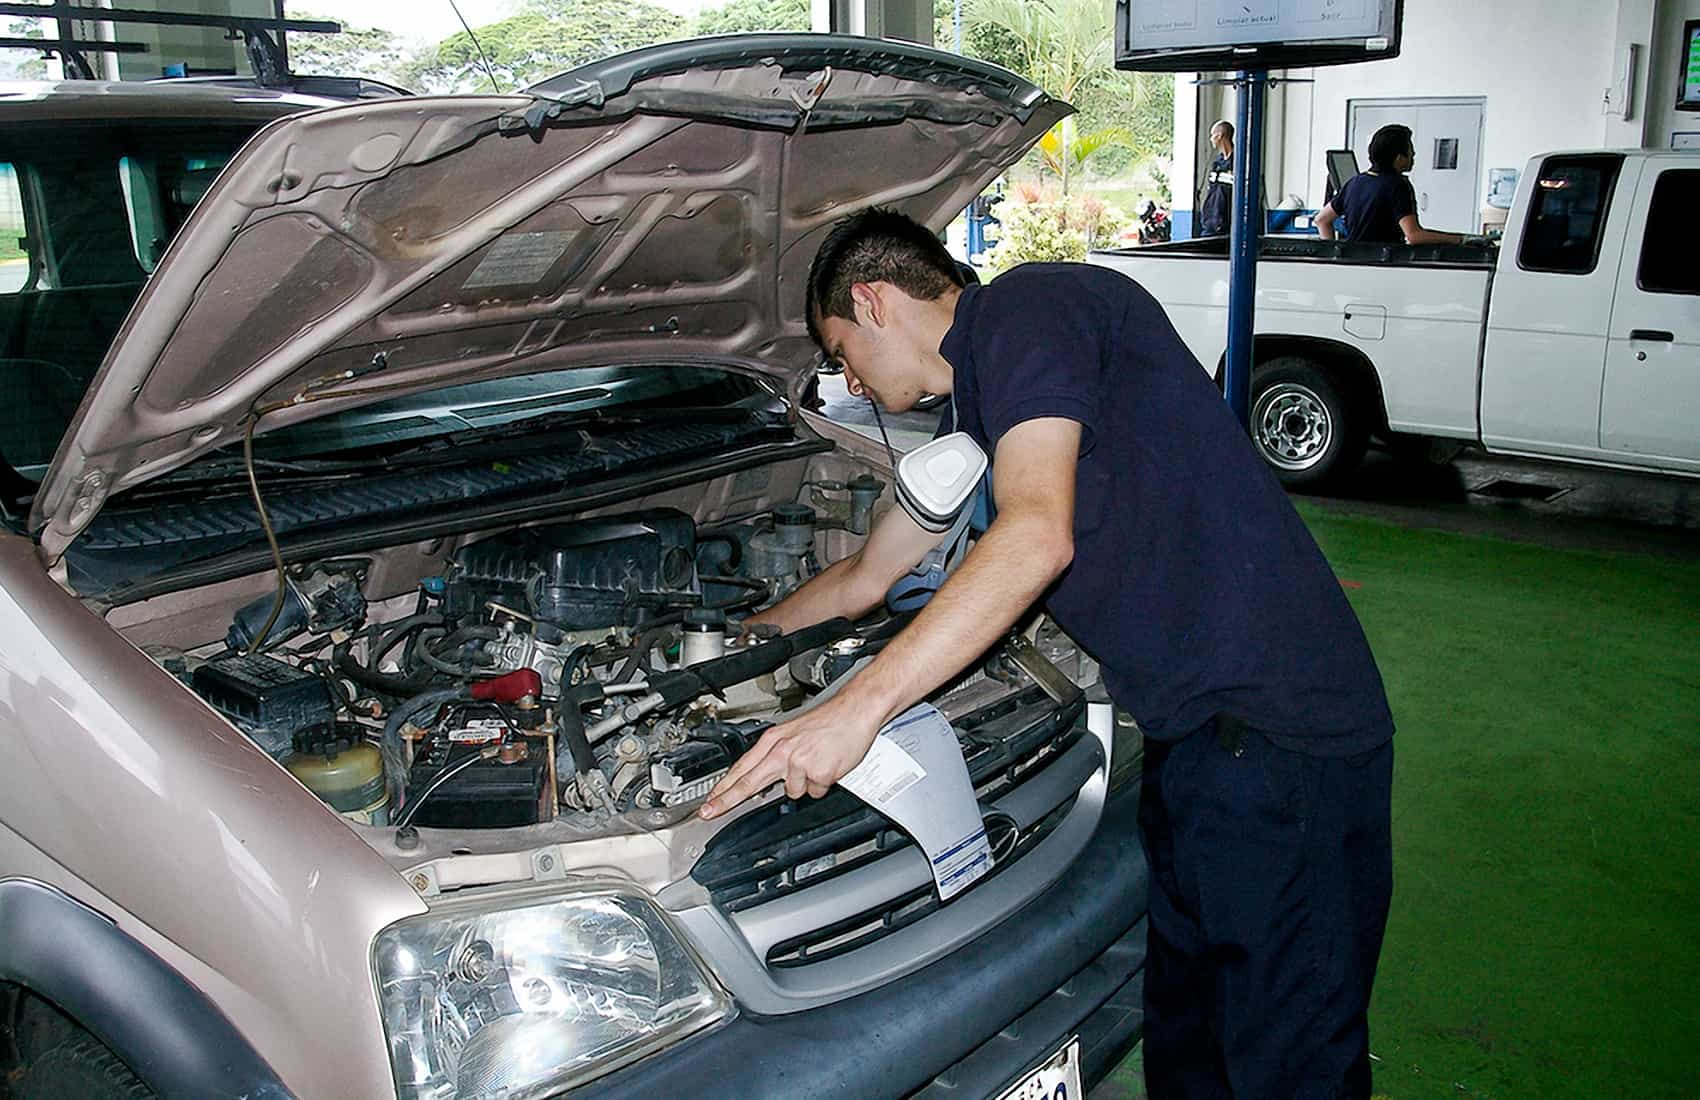 Technical inspection of vehicles